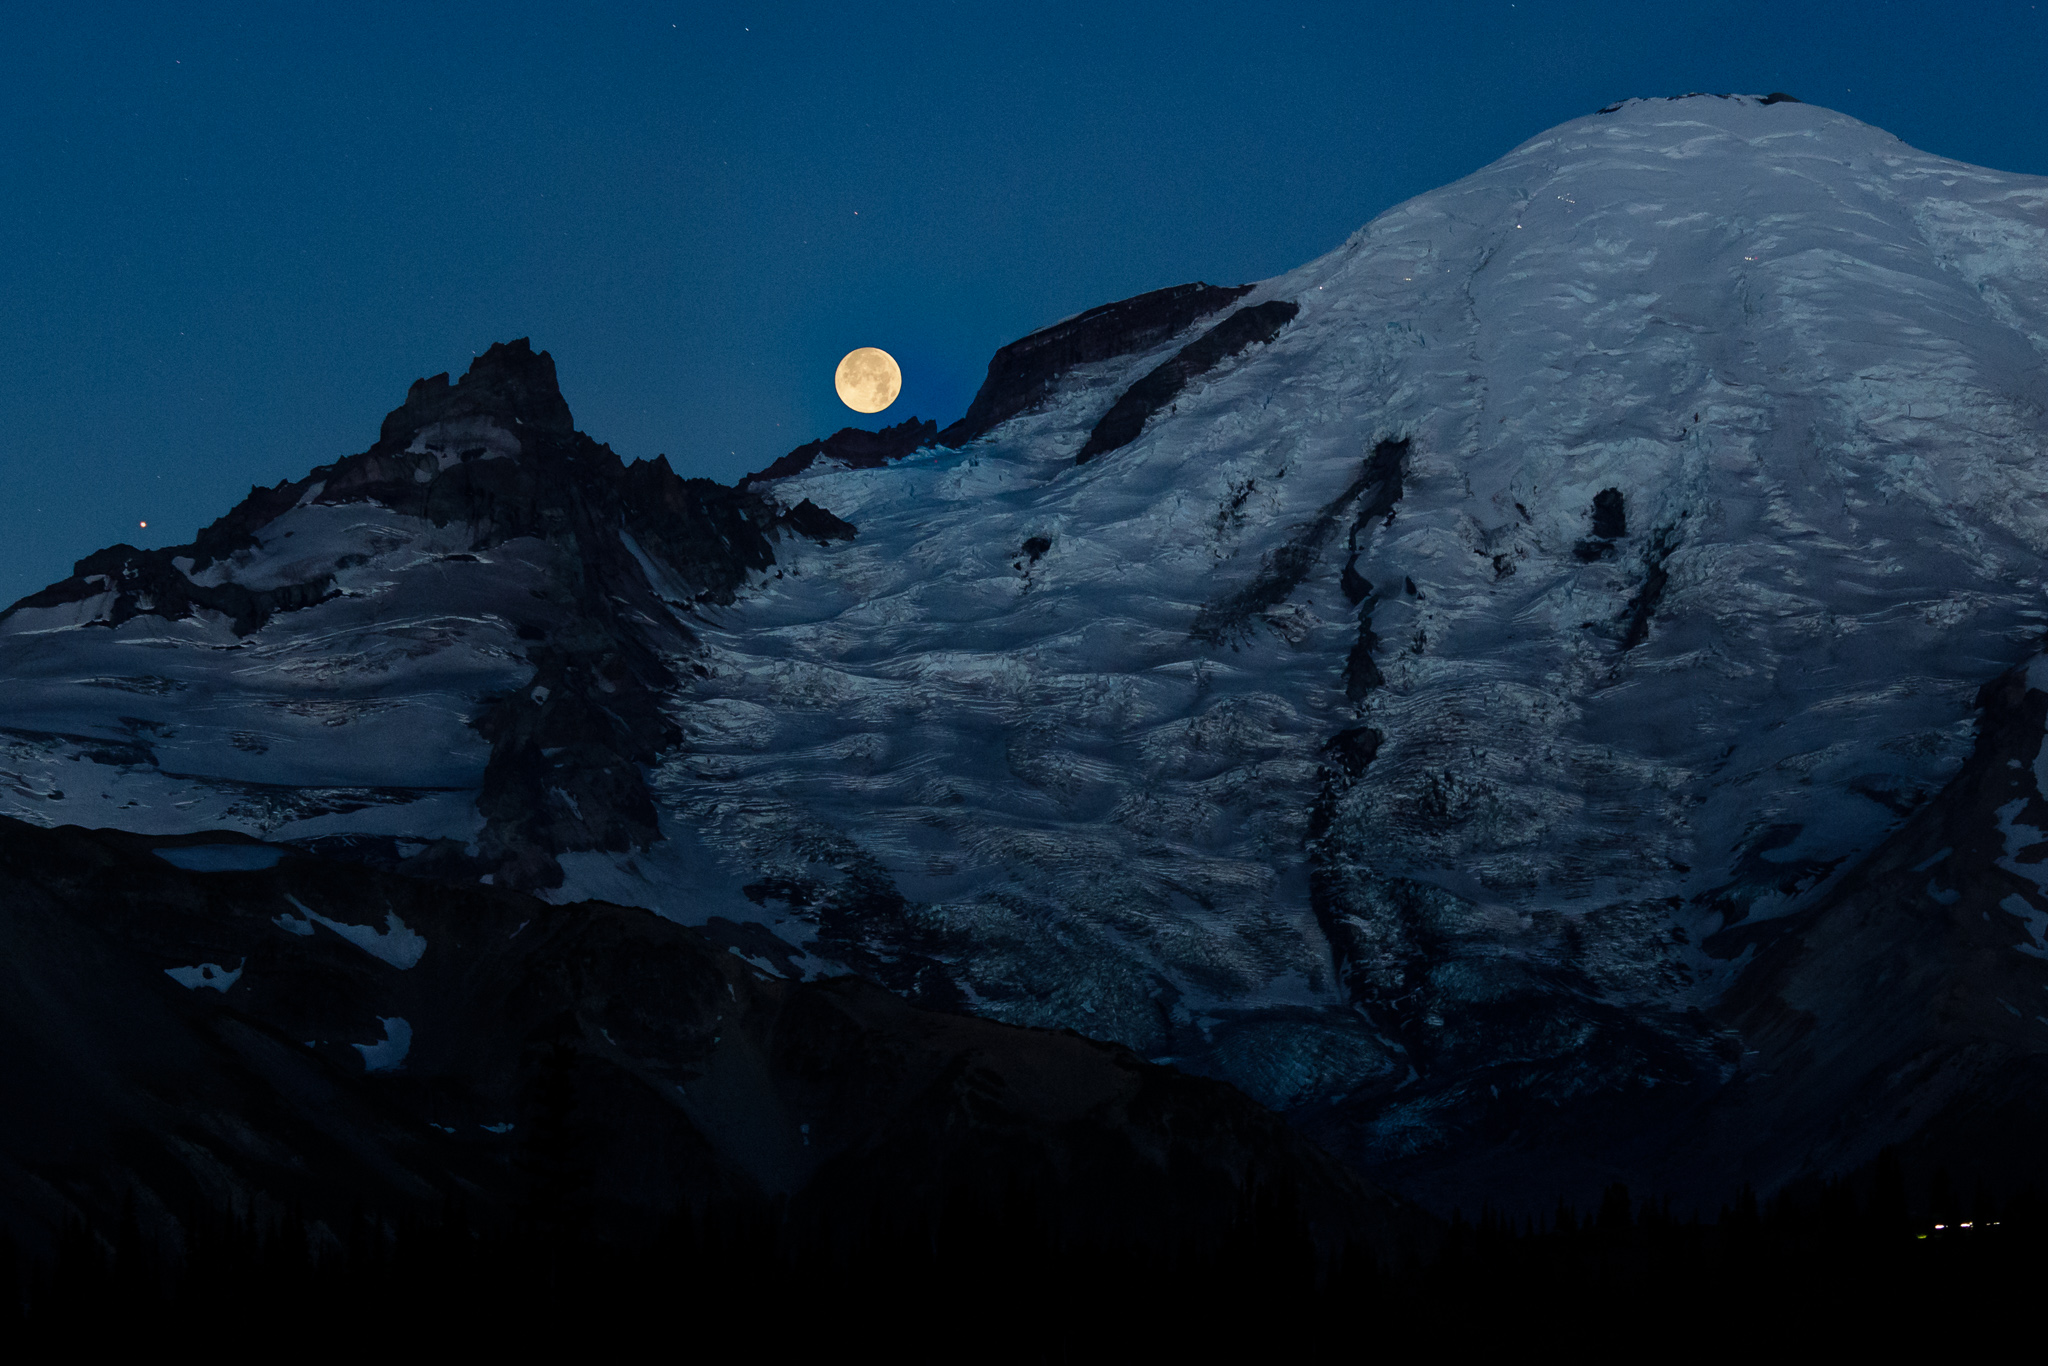 Kevin Lisota Smart Technology Logitech Momo Pedal Wiring Diagram The Full Moon And Mars Set Over Mount Rainier Flashlights From Climbers Can Be Seen Near Summit Click On Image For A Larger Version